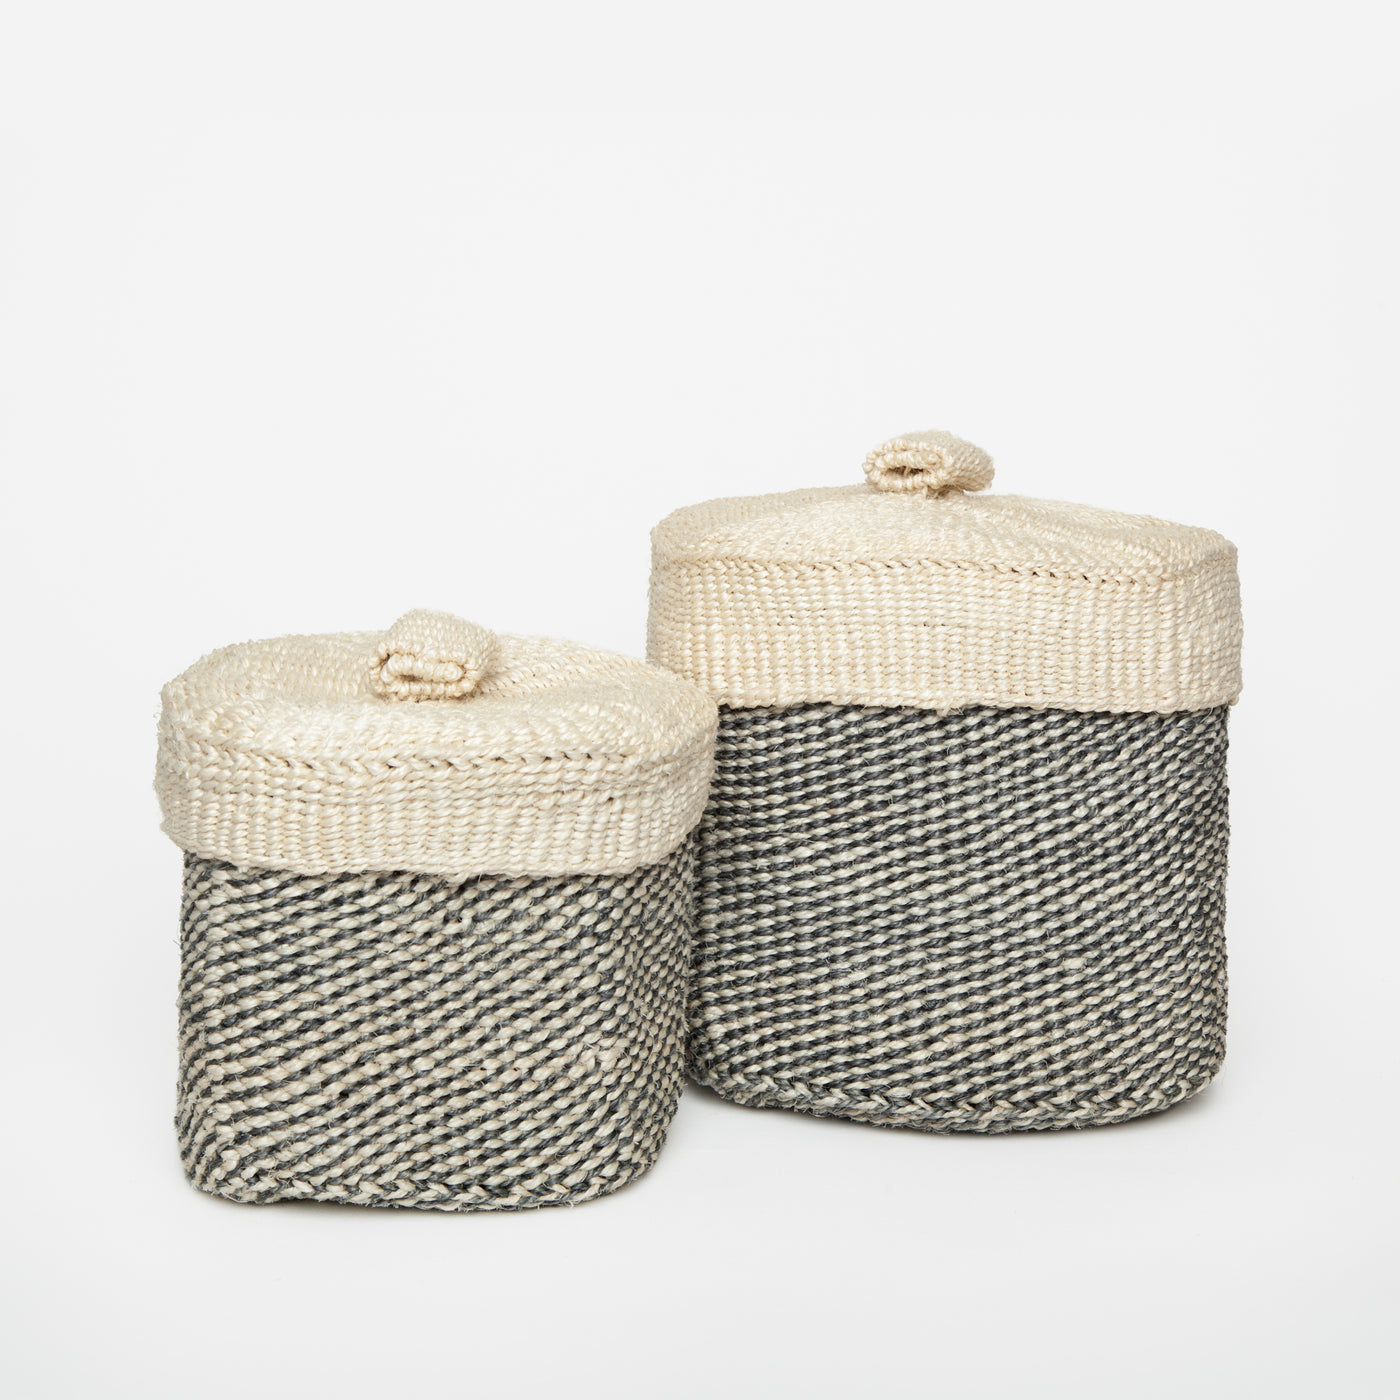 panier basket sisal with lid grey